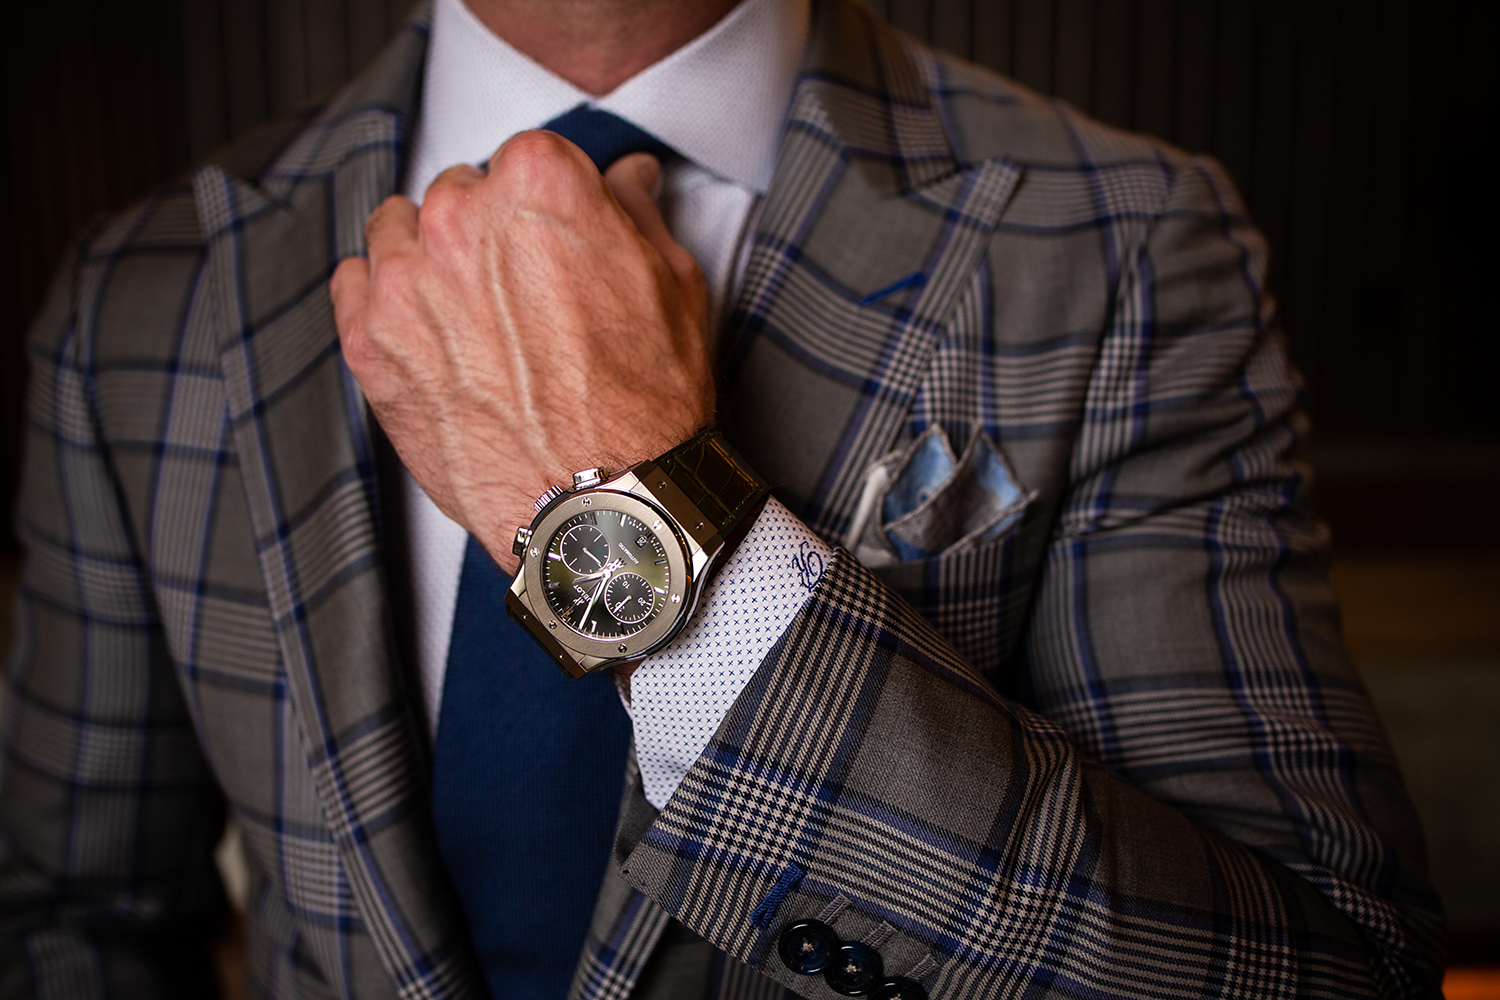 Hublot Big Bang worn by man wearing custom suit designed by Richards Bespoke